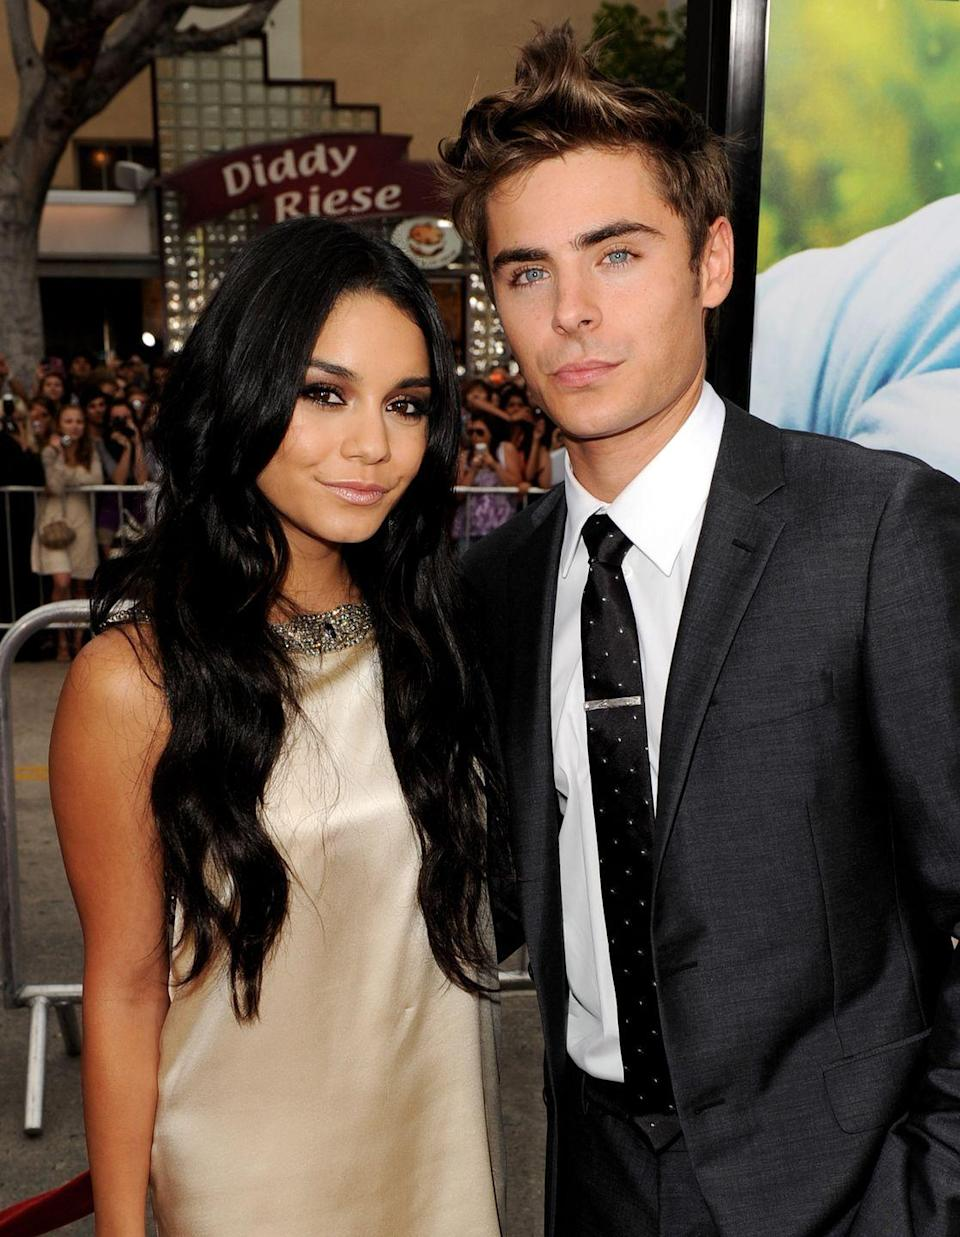 """<p>Who could forget that High School Musical's lead stars Vanessa Hudgens and Zac Efron dated throughout the franchise's duration? Vanessa and Zac had instant chemistry when they met on set in 2005. </p><p>The two dated for six years, and Vanessa continues to open up about the """"organic"""" relationship. 'We kinda blew up. It was this massive phenomenon all of a sudden and [all] eyes were on me,' <a href=""""https://people.com/tv/vanessa-hudgens-dating-zac-efron-stablilized-grounded-career/"""" rel=""""nofollow noopener"""" target=""""_blank"""" data-ylk=""""slk:she said"""" class=""""link rapid-noclick-resp"""">she said</a>. 'And it's just a really weird foreign thing to go through, and by being in a relationship, I feel like it kind of kept me stabilised and grounded, and I had someone to lean on who was going through it as well.'</p>"""